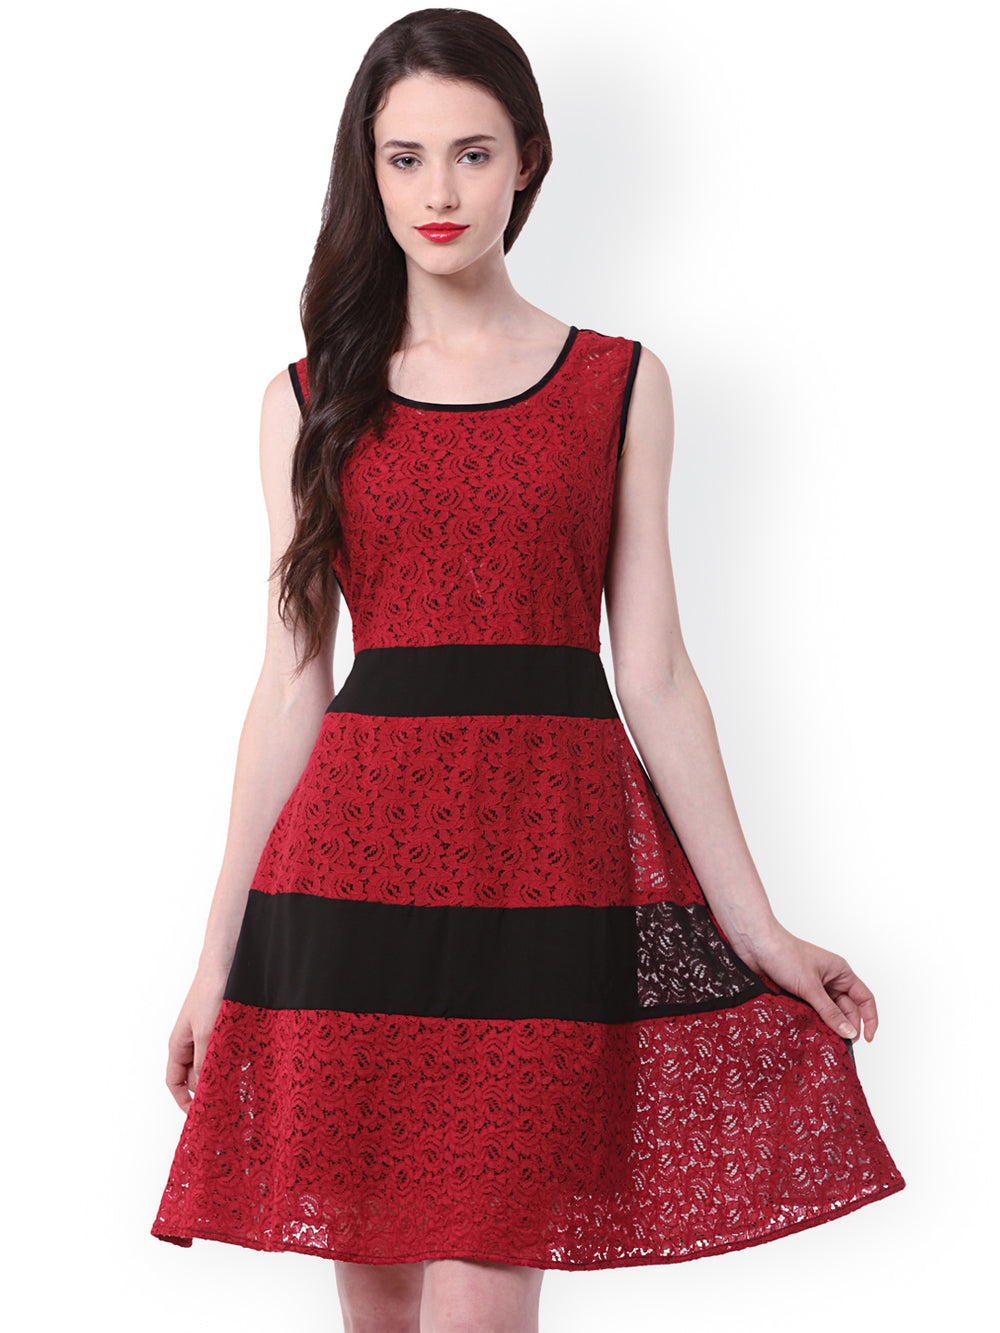 eyelet Red & Black Lace Fit & Flare Dress